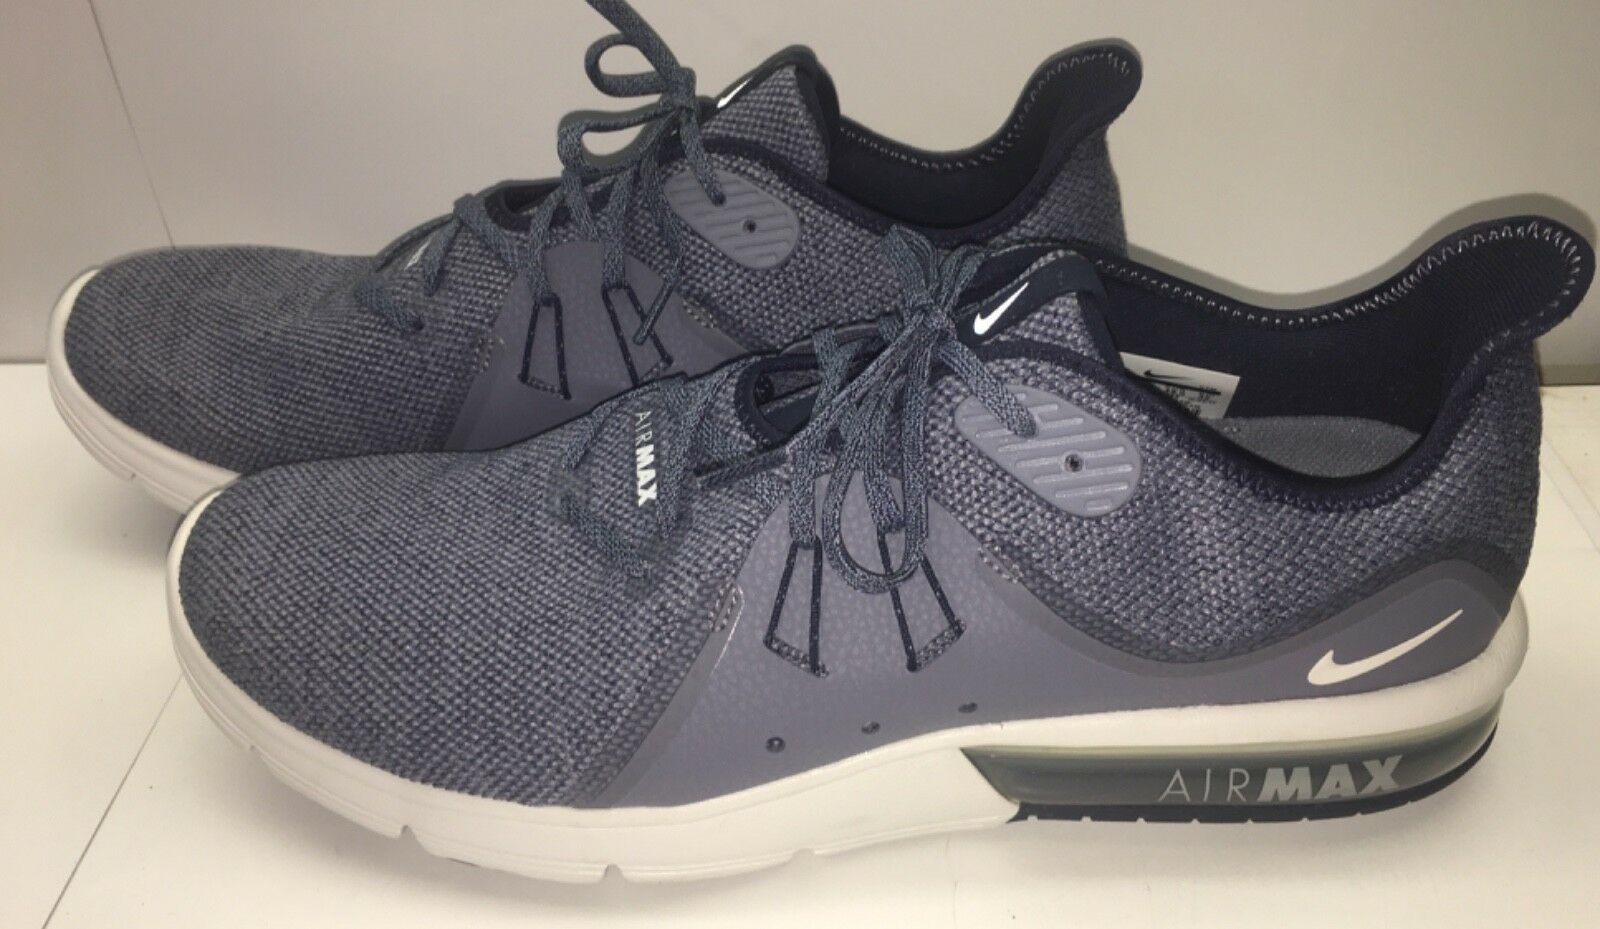 Men's NIKE AIR MAX SEQUENT 3 Running shoes OBSIDIAN blueE WHITE Size 14 Near Mint